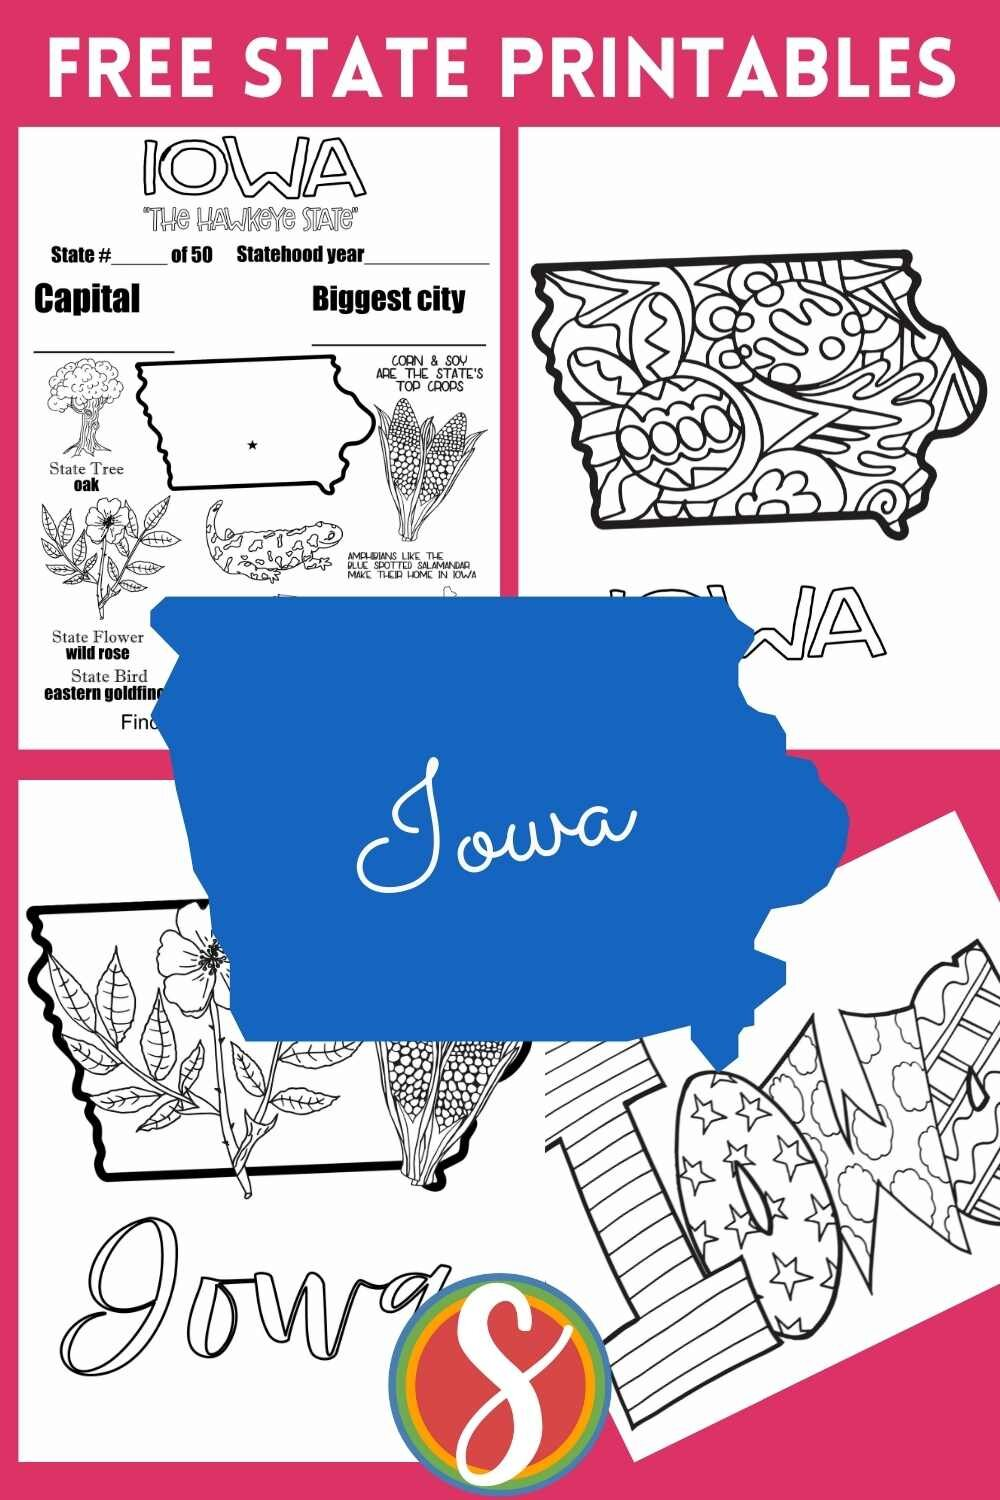 Free US states printable activity pages - practice some geography, learn fun facts about the states, have fun coloring these free sheets about each of the 50 states in the United States